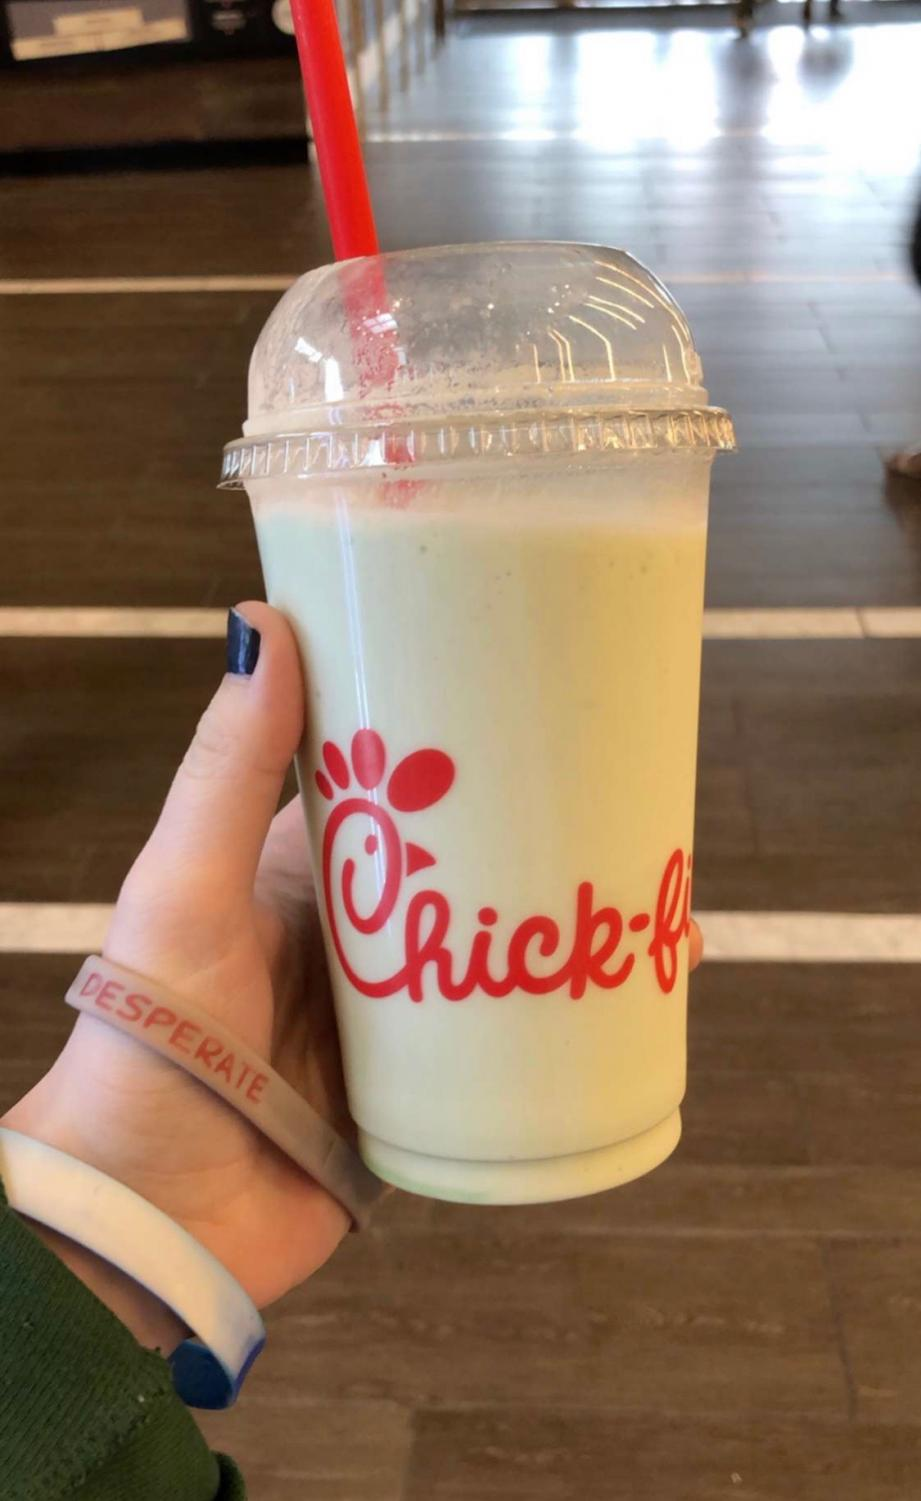 Chick-Fil-A features a new frosted key lime pie milkshake for the spring season.